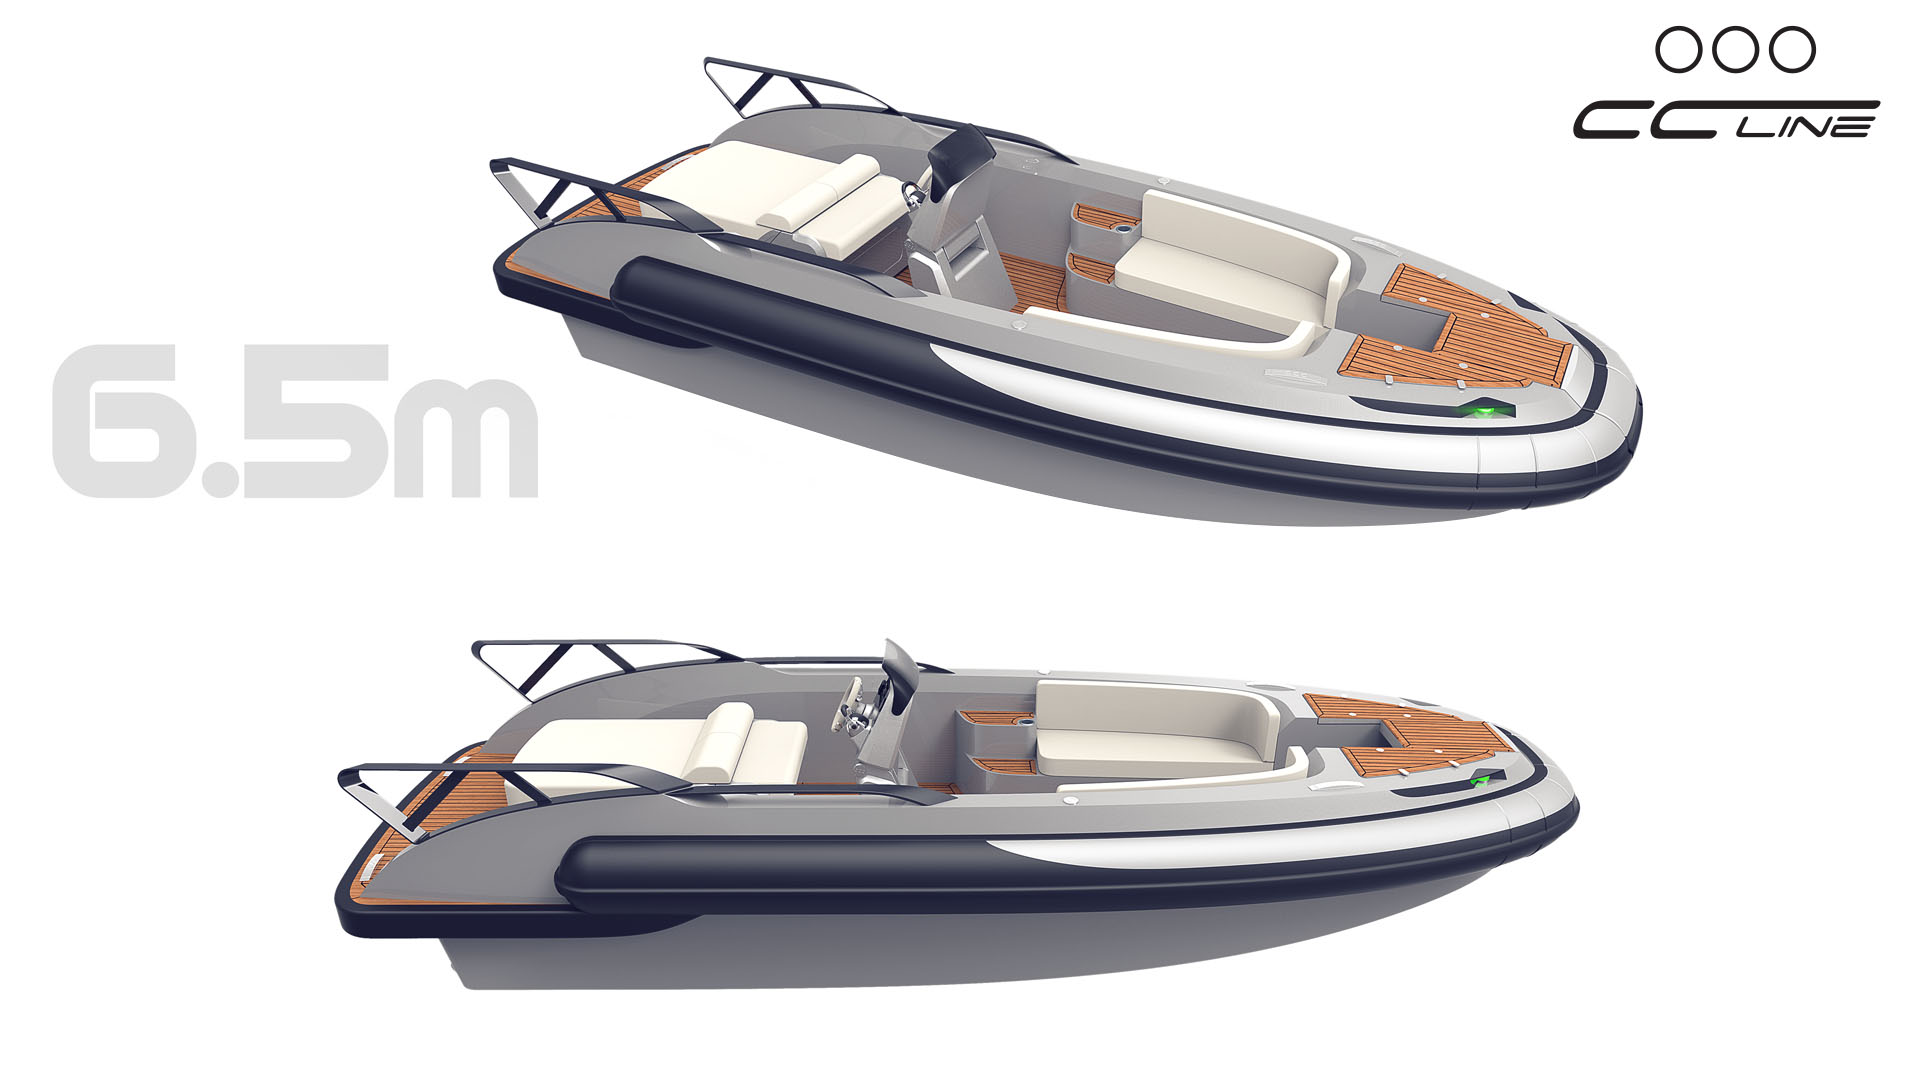 CC LINE superyacht tender, 6.5 meter central console boat, RIB tender, yacht design by Hamid Bekradi, HBD Studios